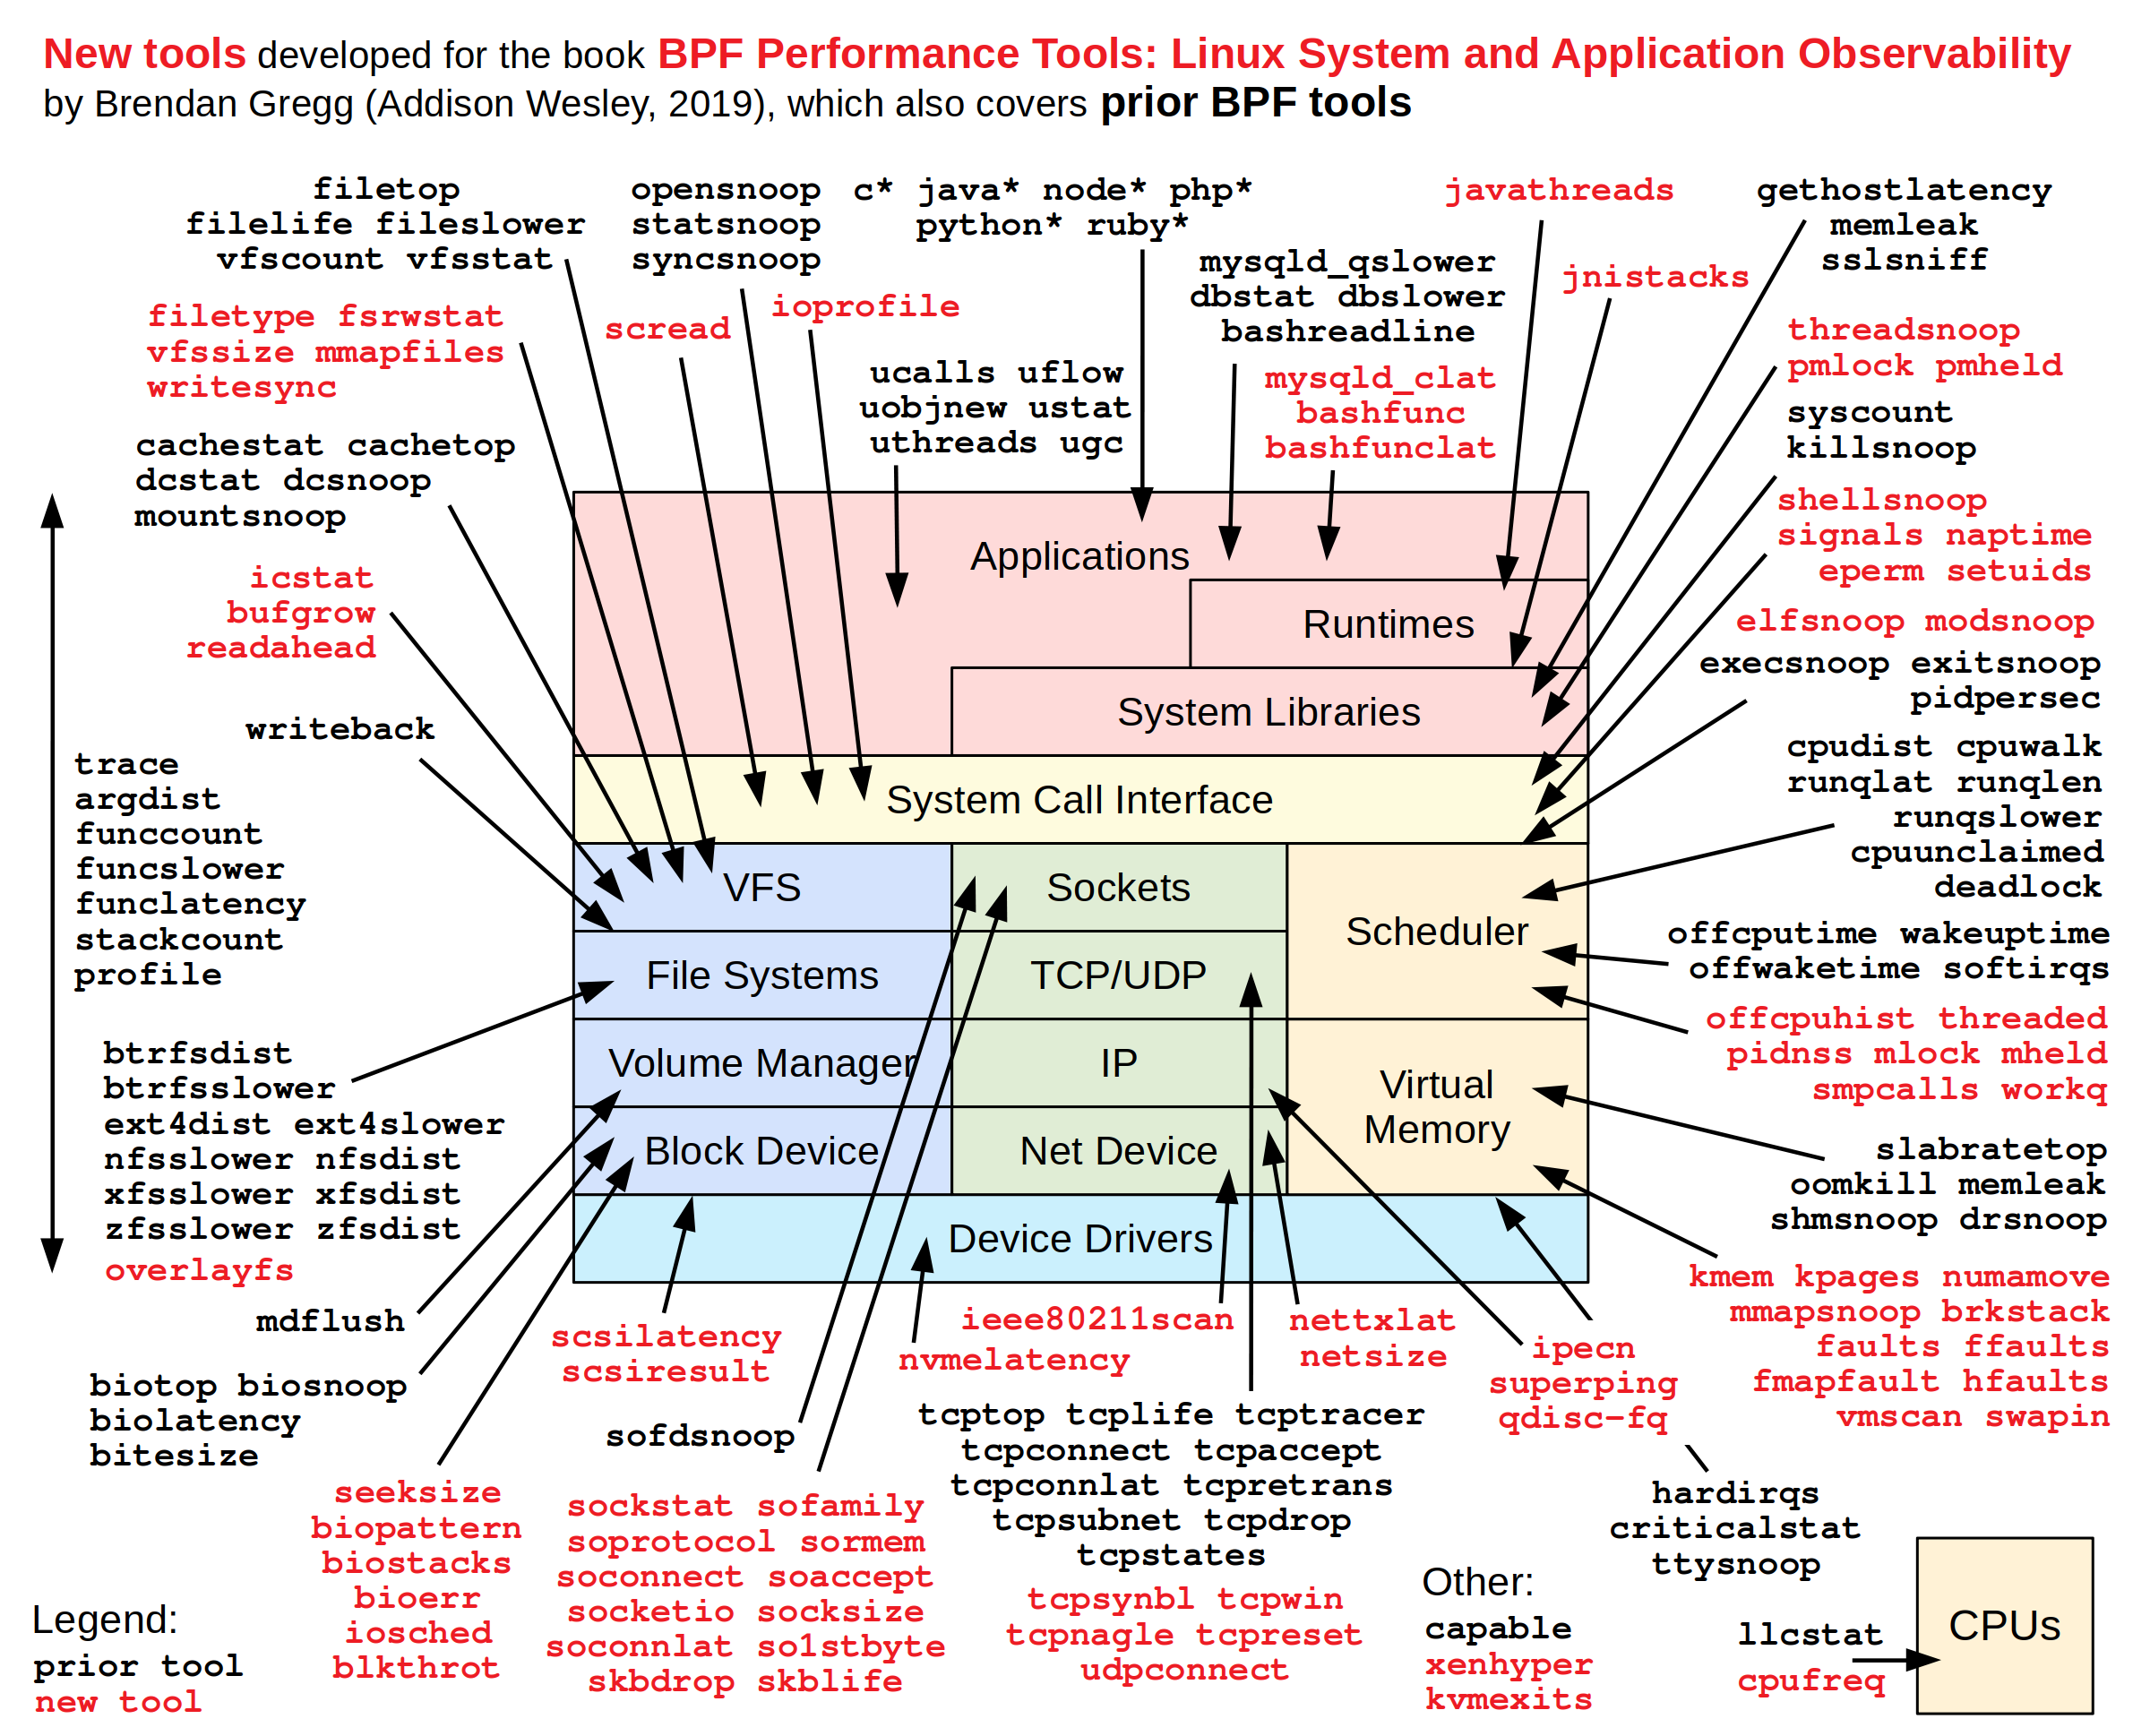 BPF Performance Tools: Linux System and Application